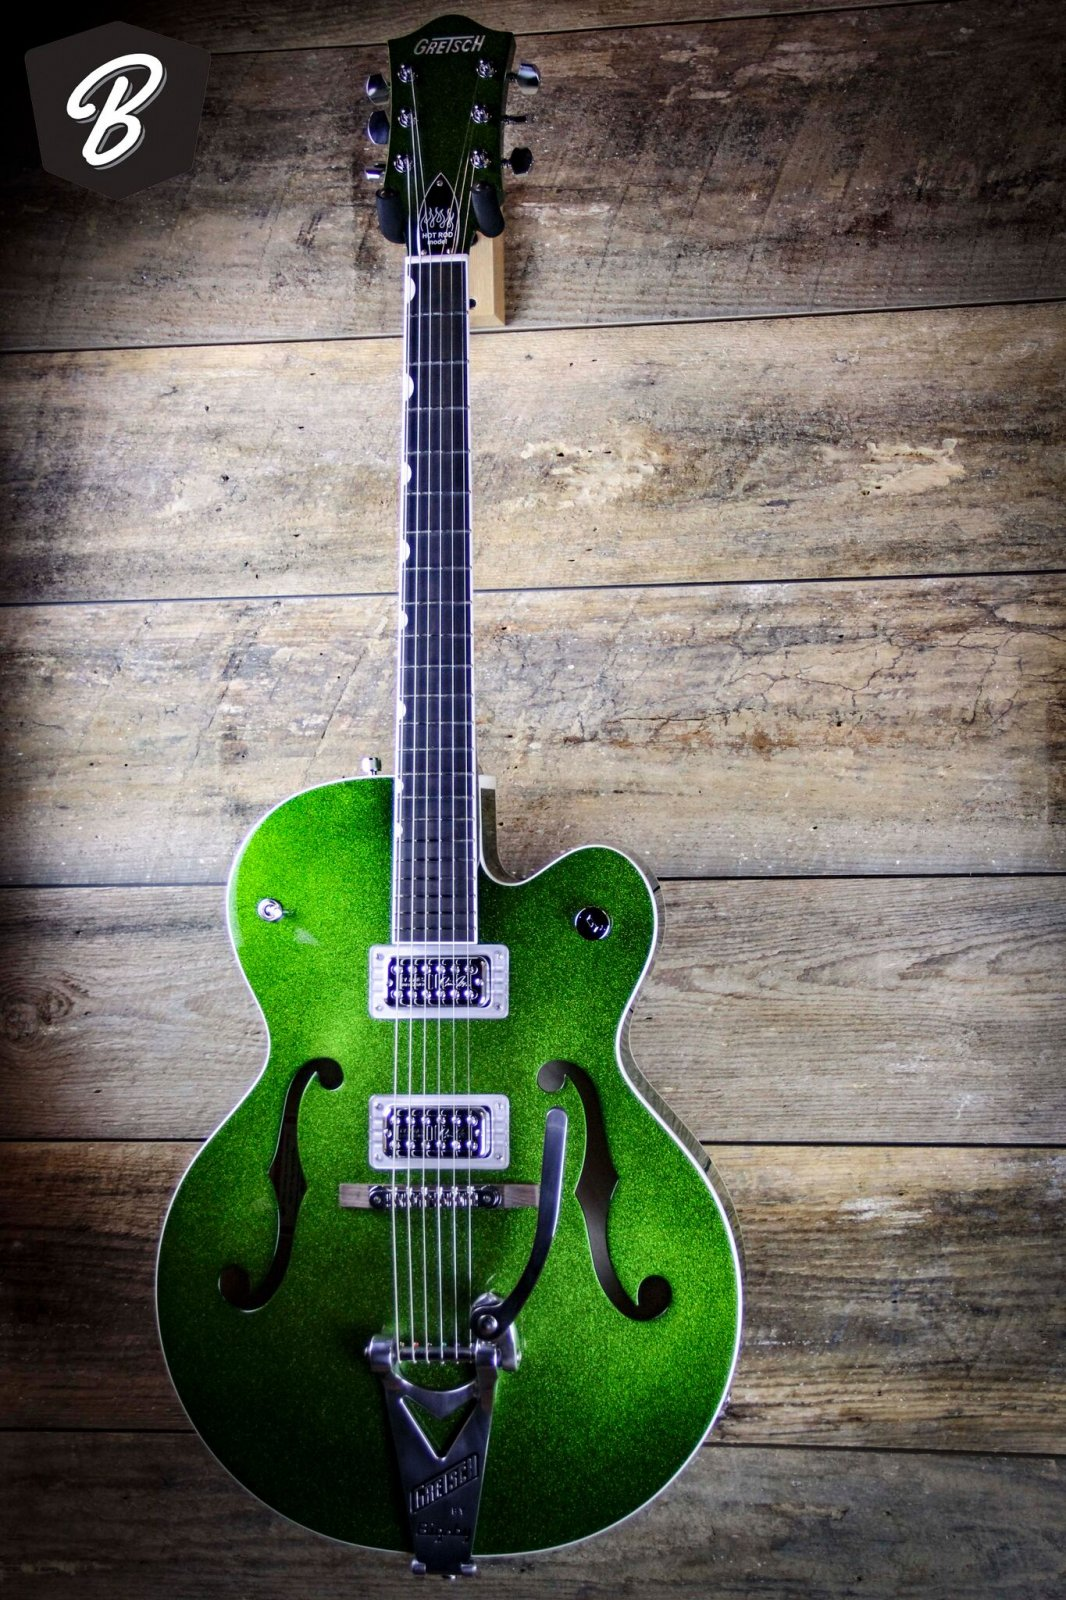 Gretsch BRIAN SETZER SIGNATURE HOT ROD HOLLOW BODY WITH BIGSBY w/ Hardcase